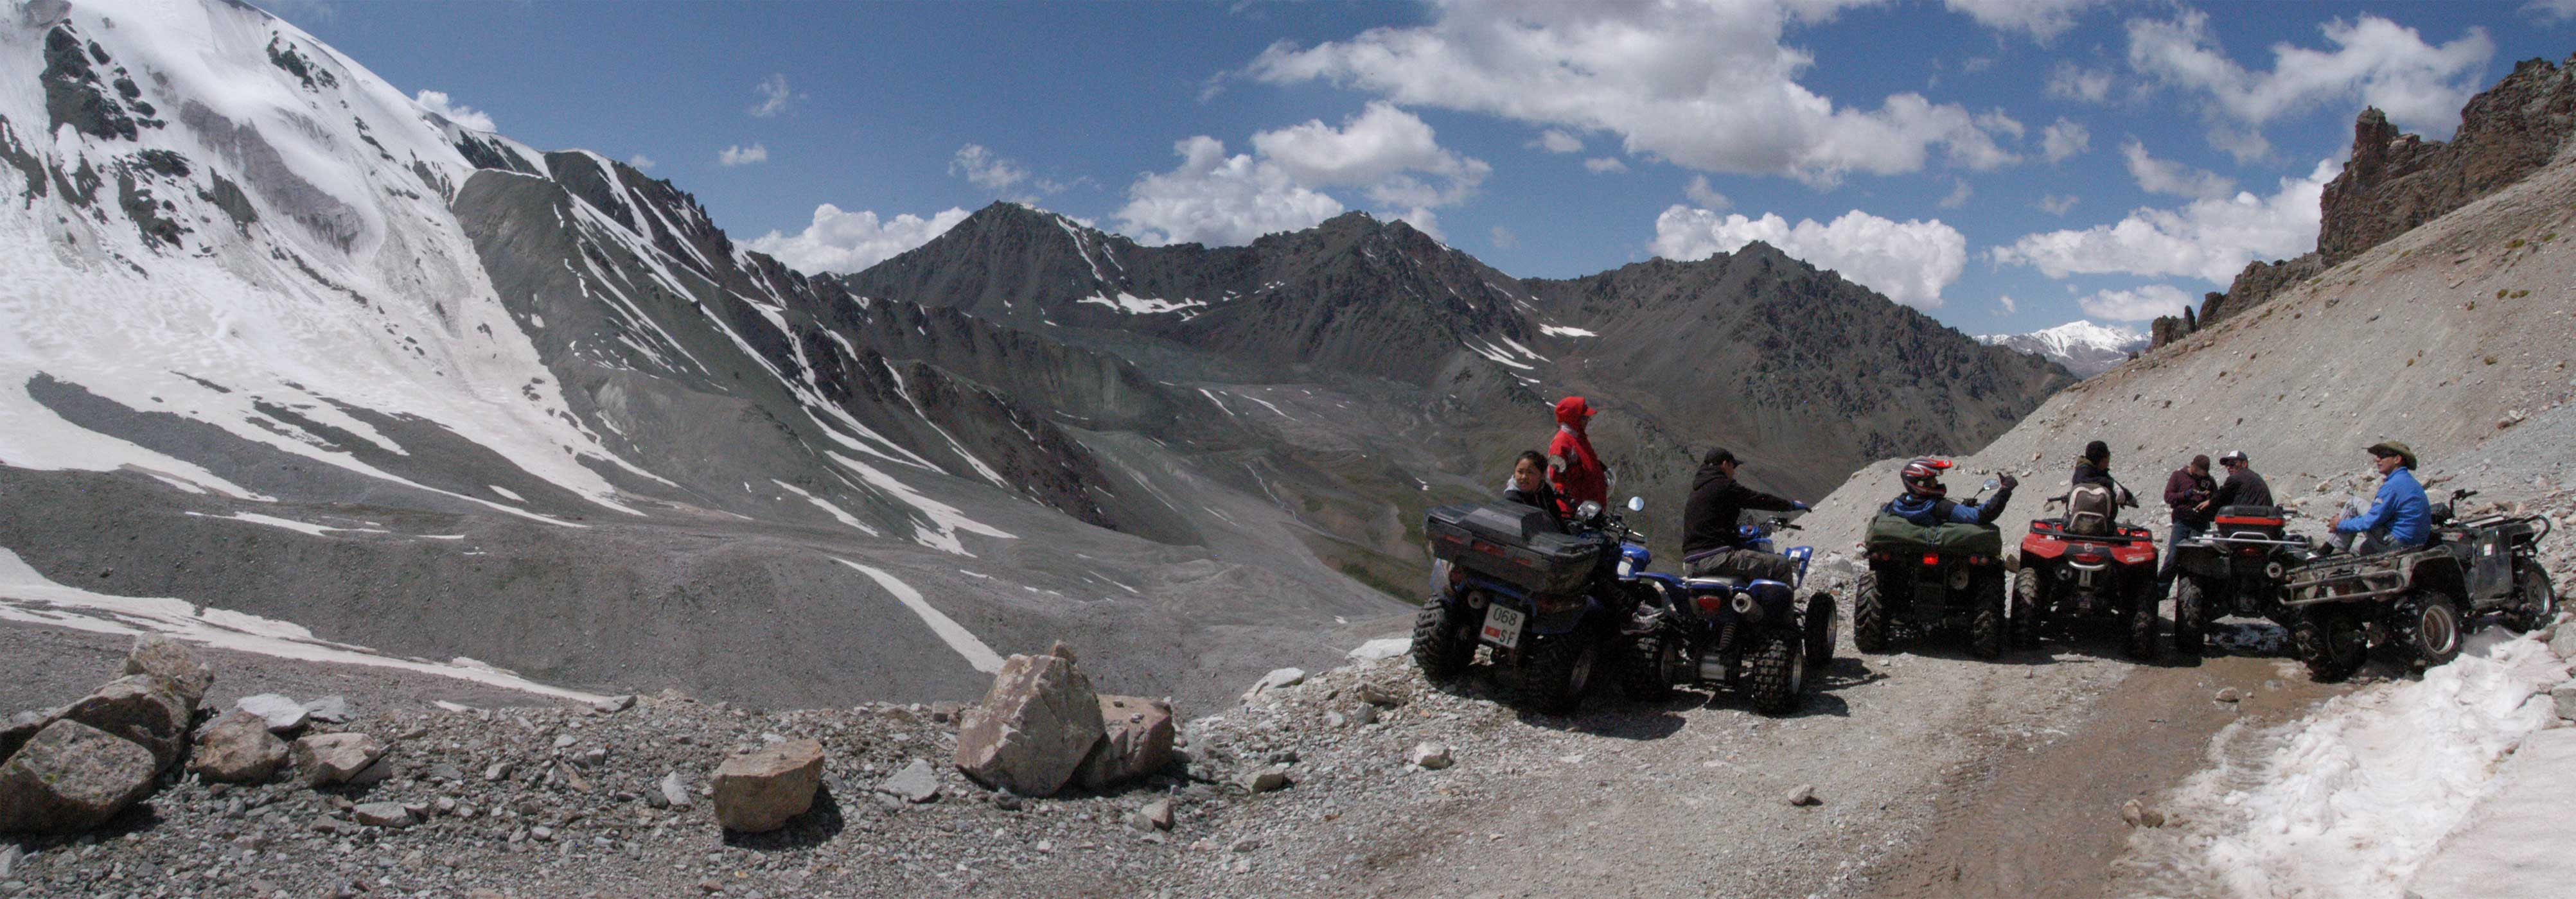 off road quad tours m41 pamir highway